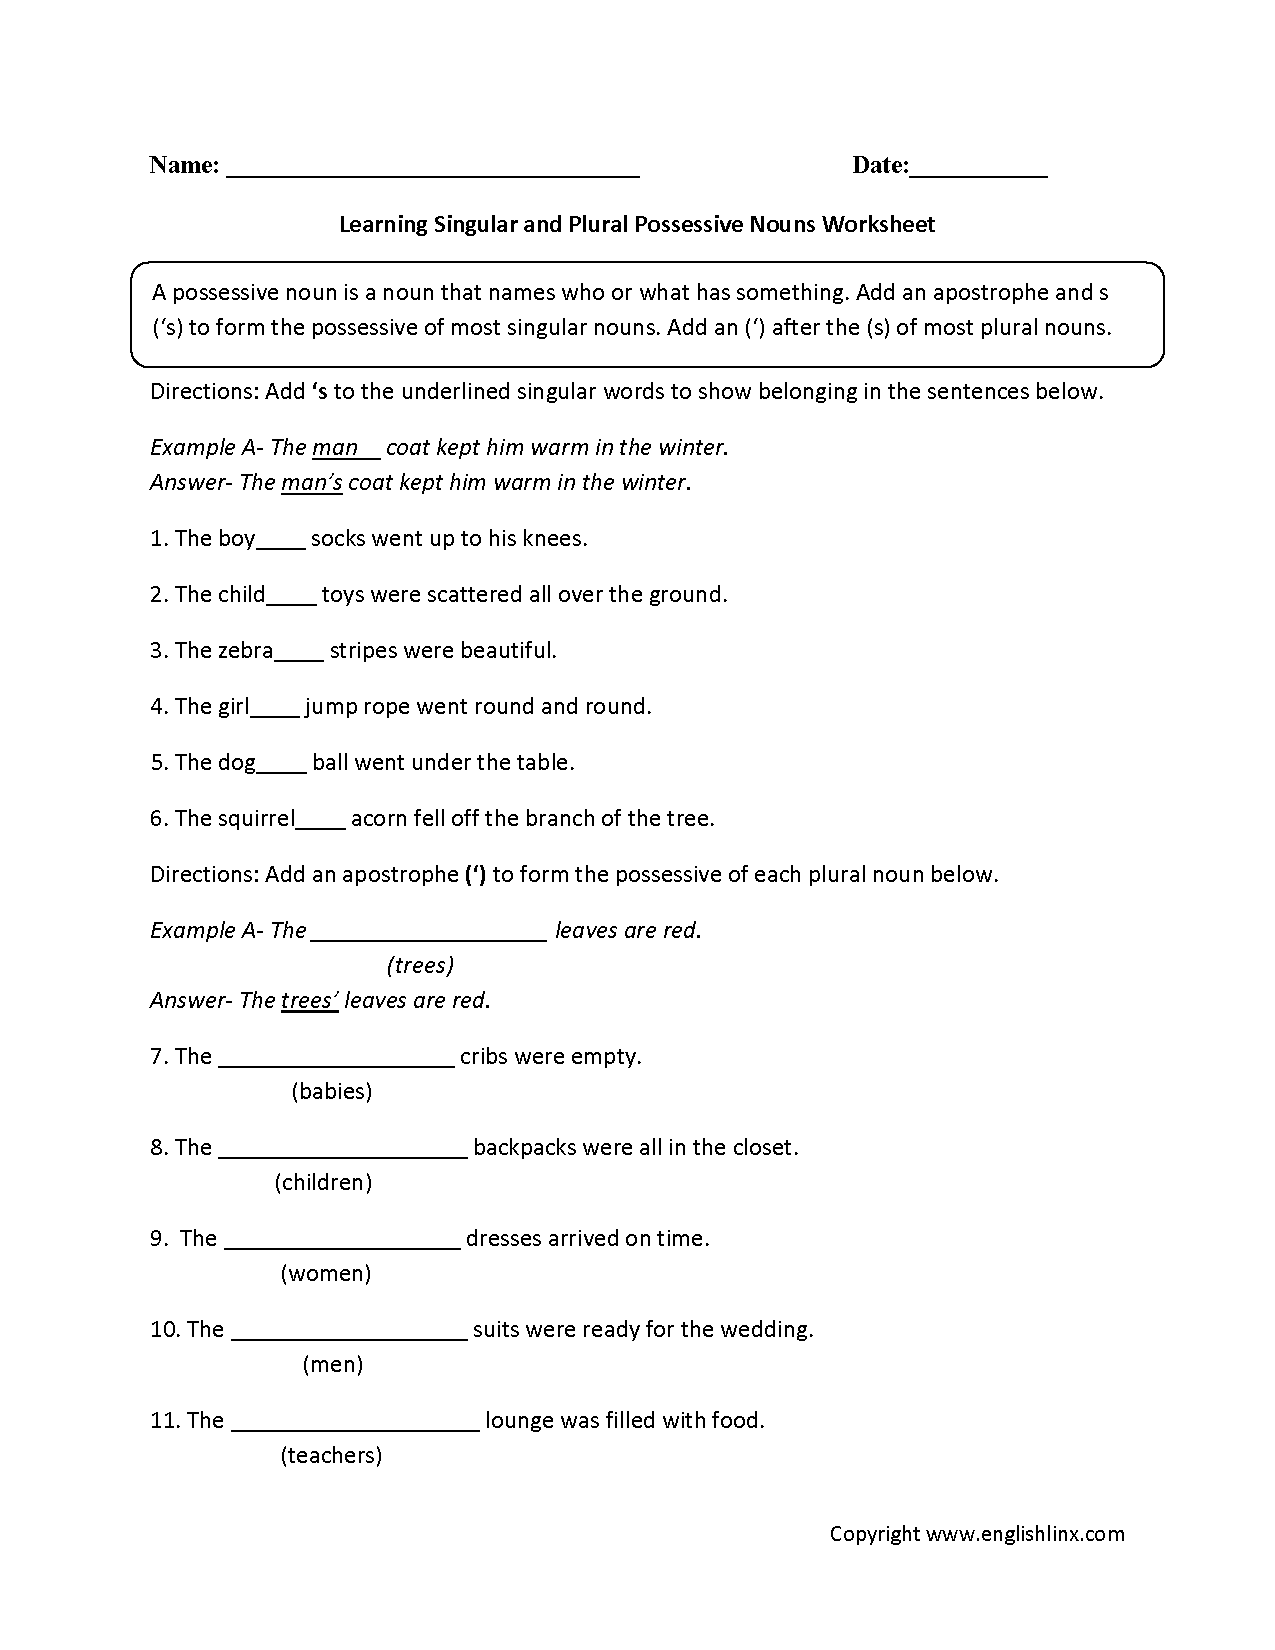 Worksheets Noun Worksheets For Kindergarten nouns worksheets possessive grades 9 12 worksheets